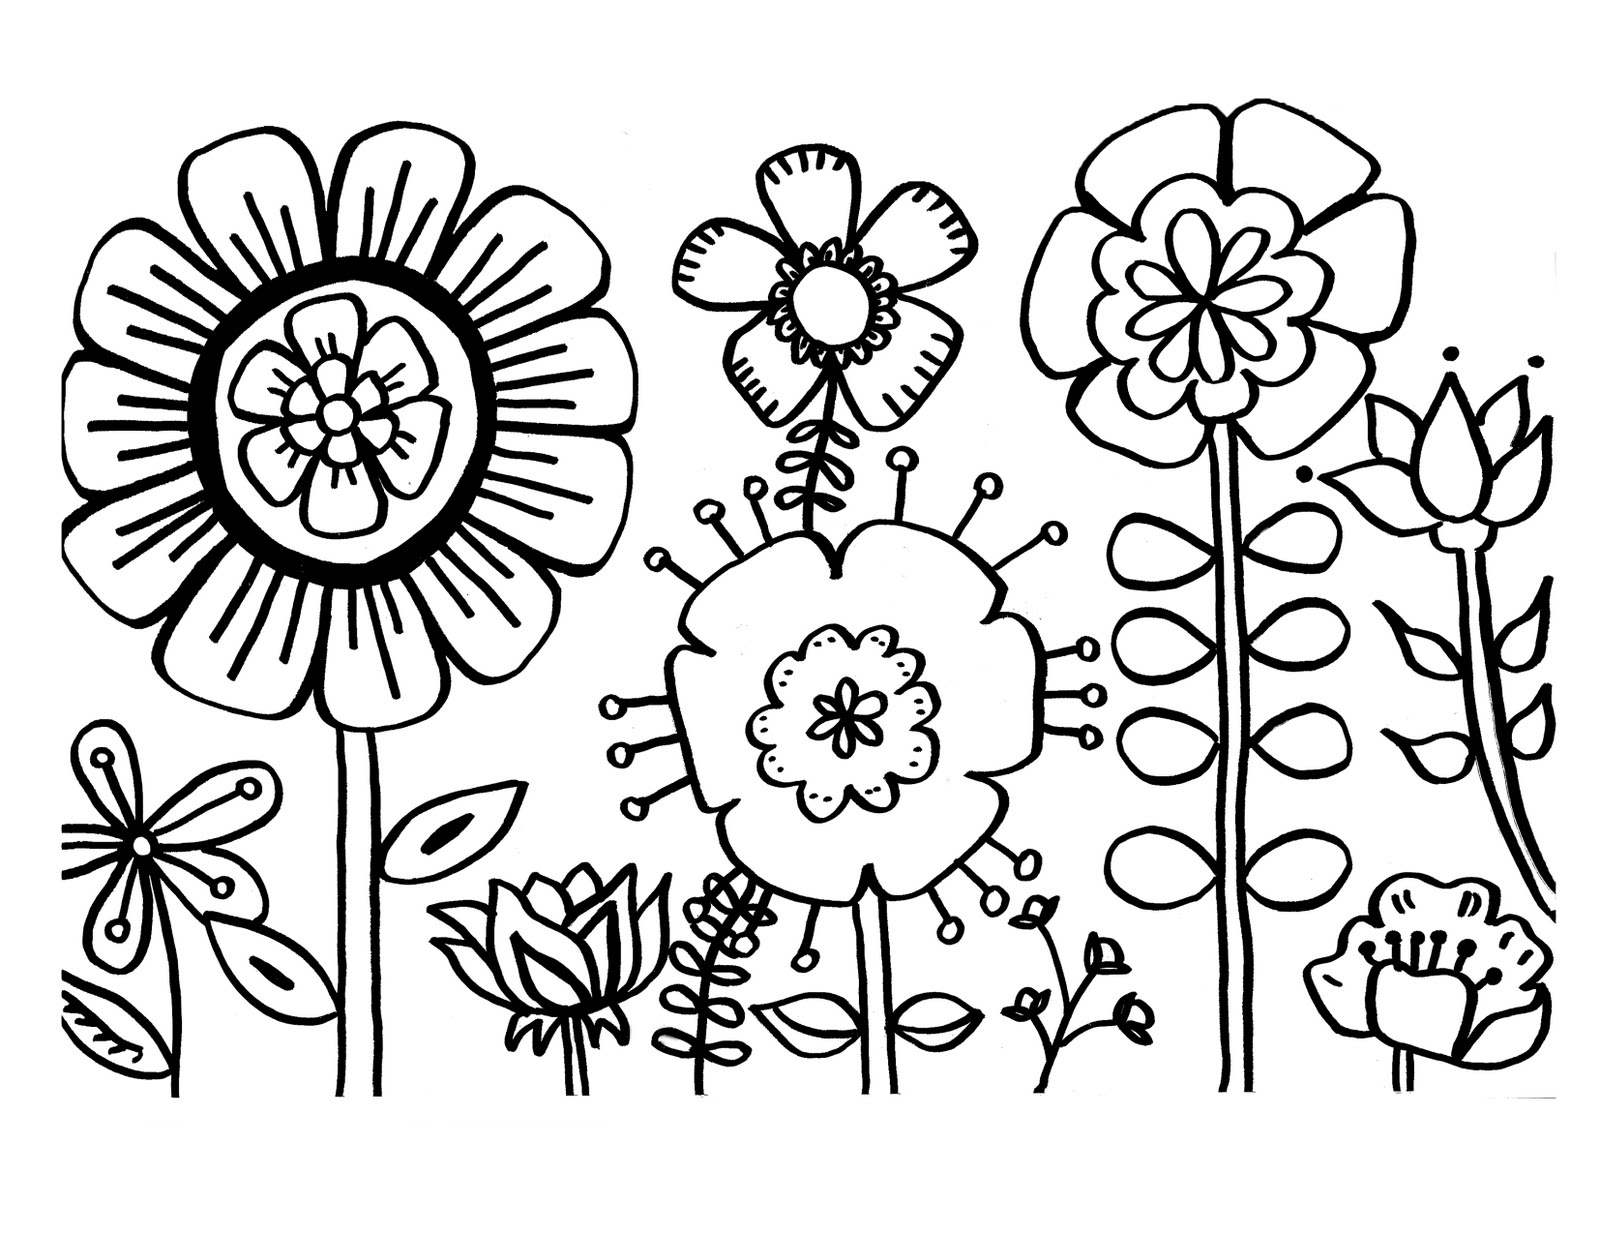 colouring pictures of plants free printable flower coloring pages for kids best colouring of pictures plants 1 1